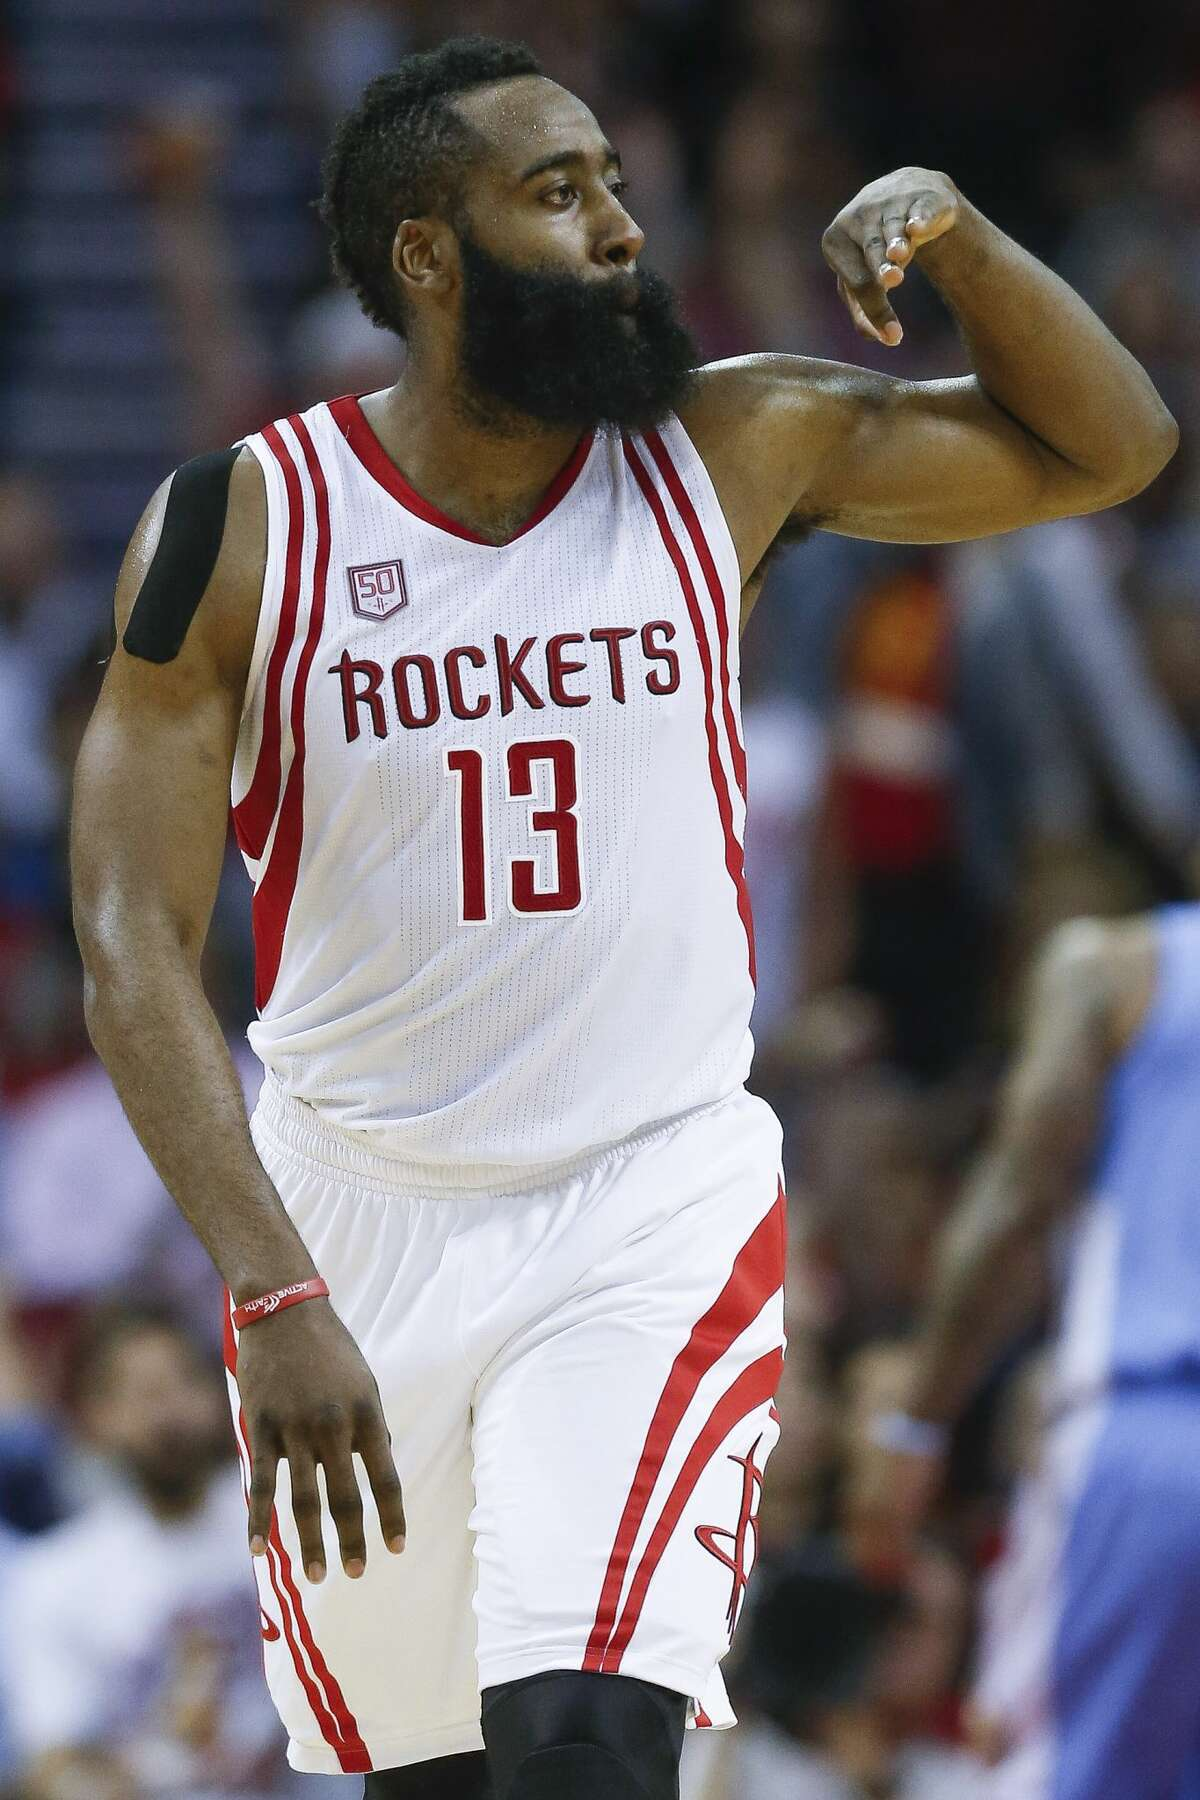 Houston Rockets guard James Harden (13) celebrates after hitting a three pointer as the Houston Rockets beat the Denver Nuggets 110-104 at the Toyota Center Wednesday, April 5, 2017 in Houston. ( Michael Ciaglo / Houston Chronicle)